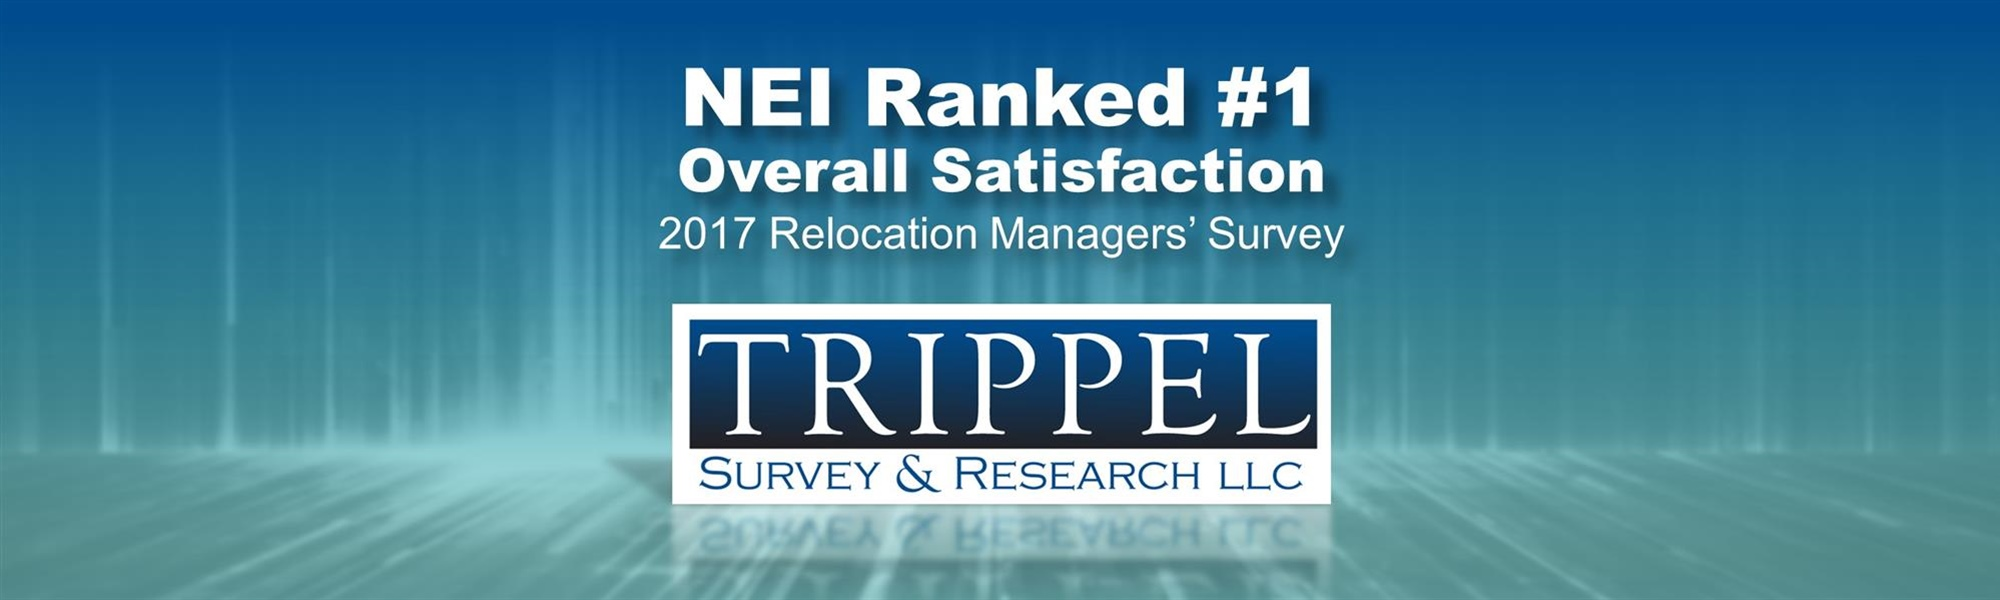 NEI Ranked #1 Overall Satisfaction